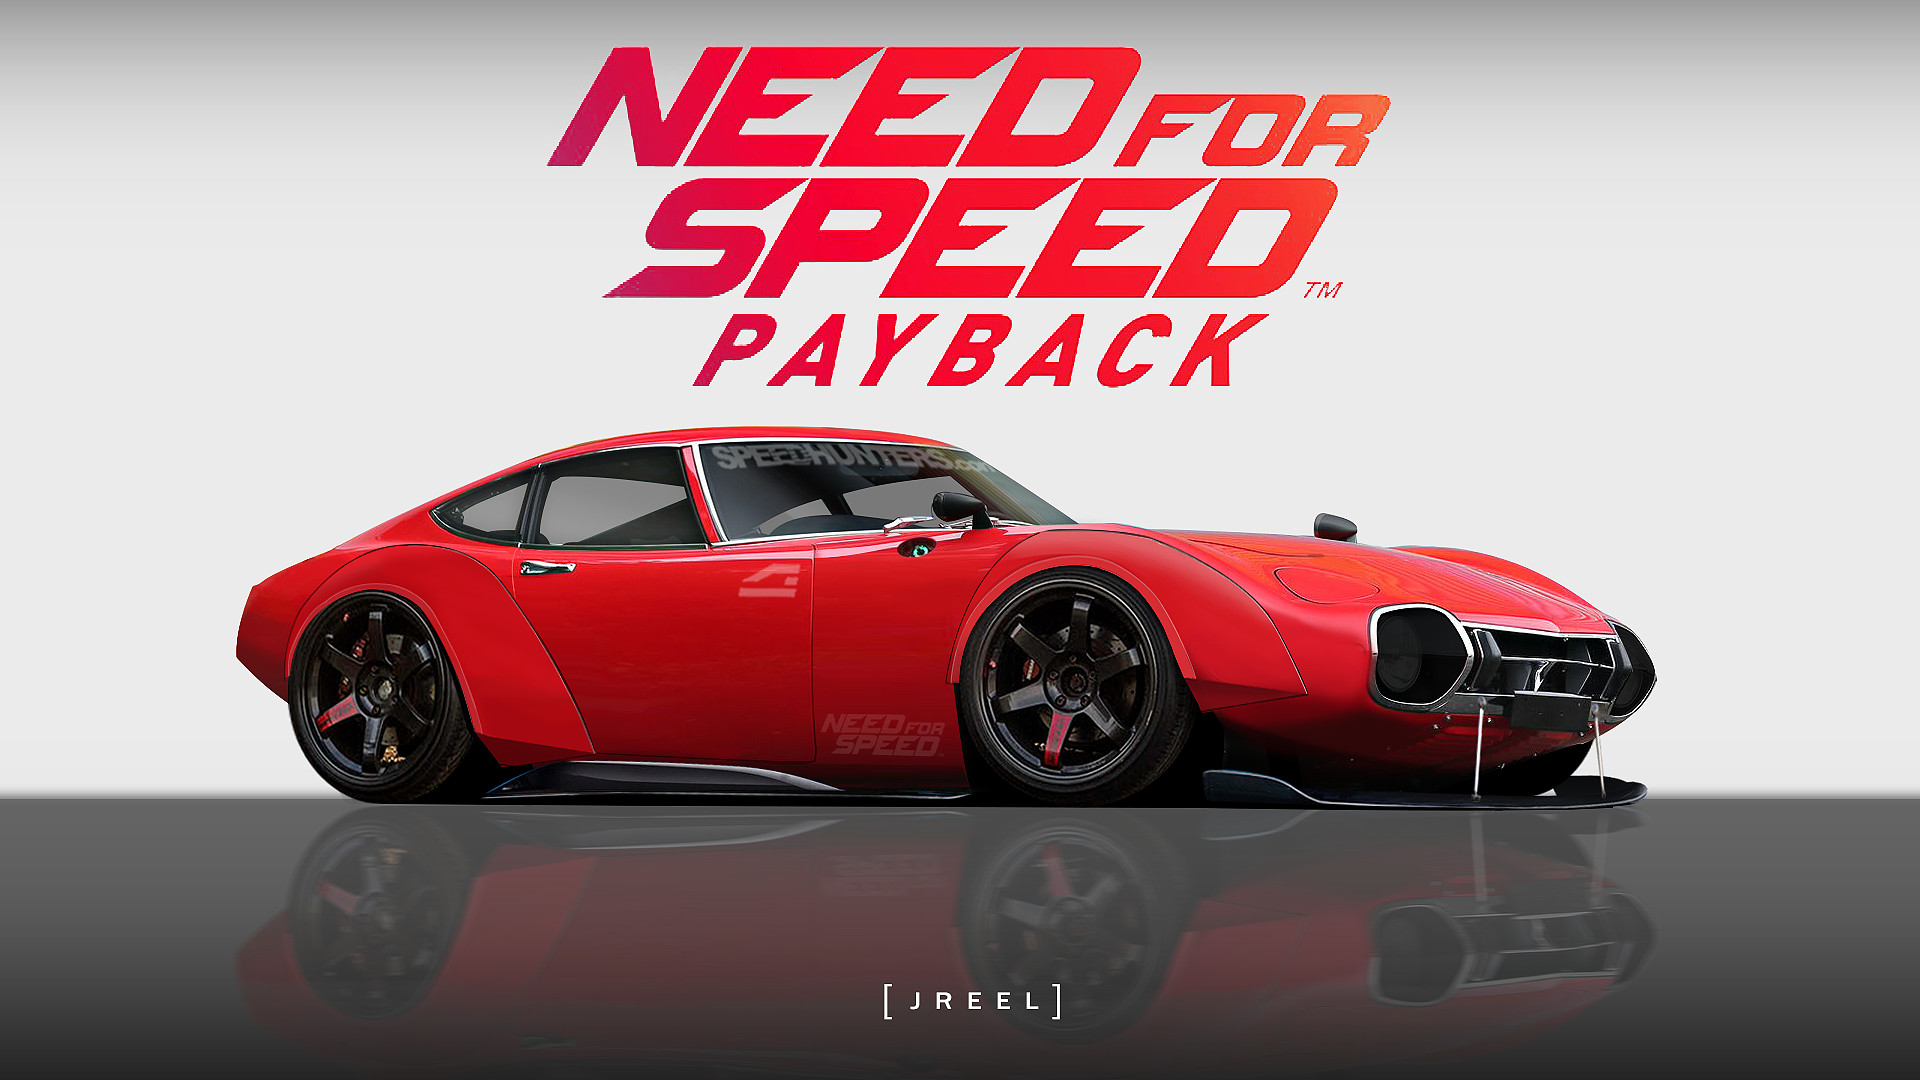 ArtStation   Toyota 2000GT Need for Speed Payback 1920x1080